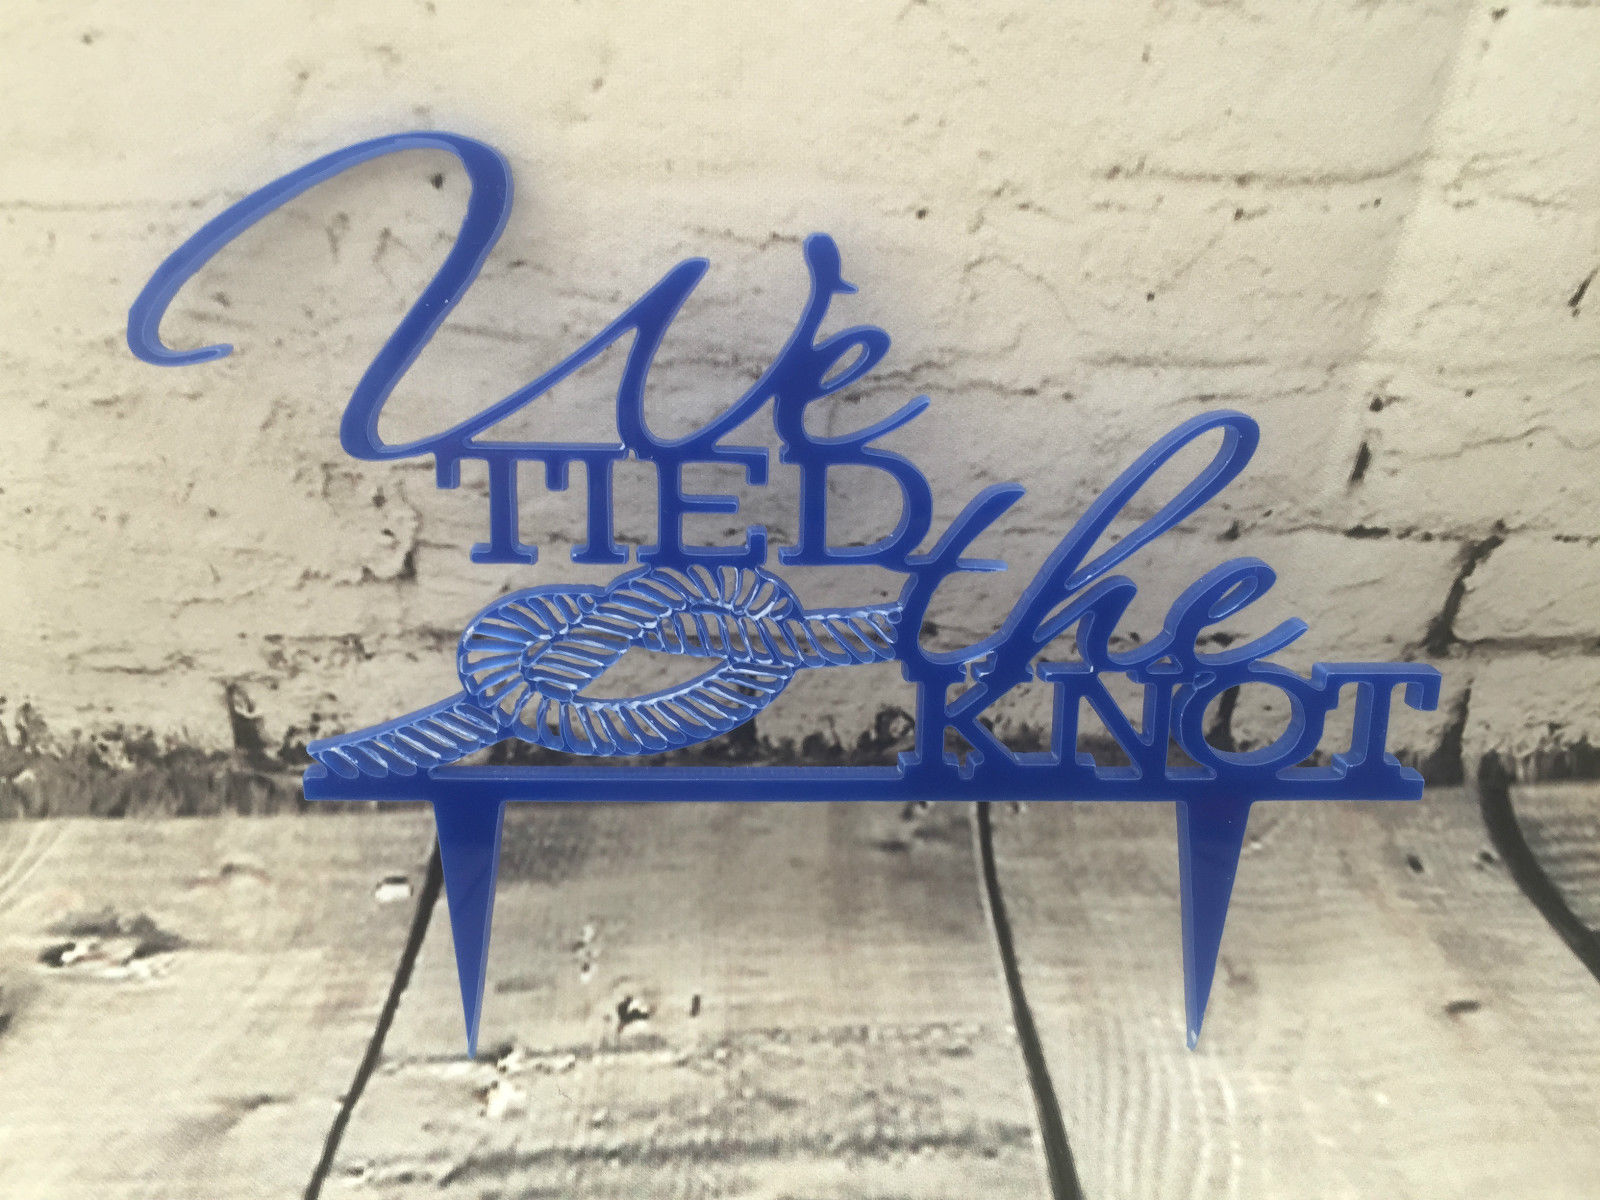 We Tied the Knot Proposal Wedding Engagement Cake Topper Mirror Acrylic nautical